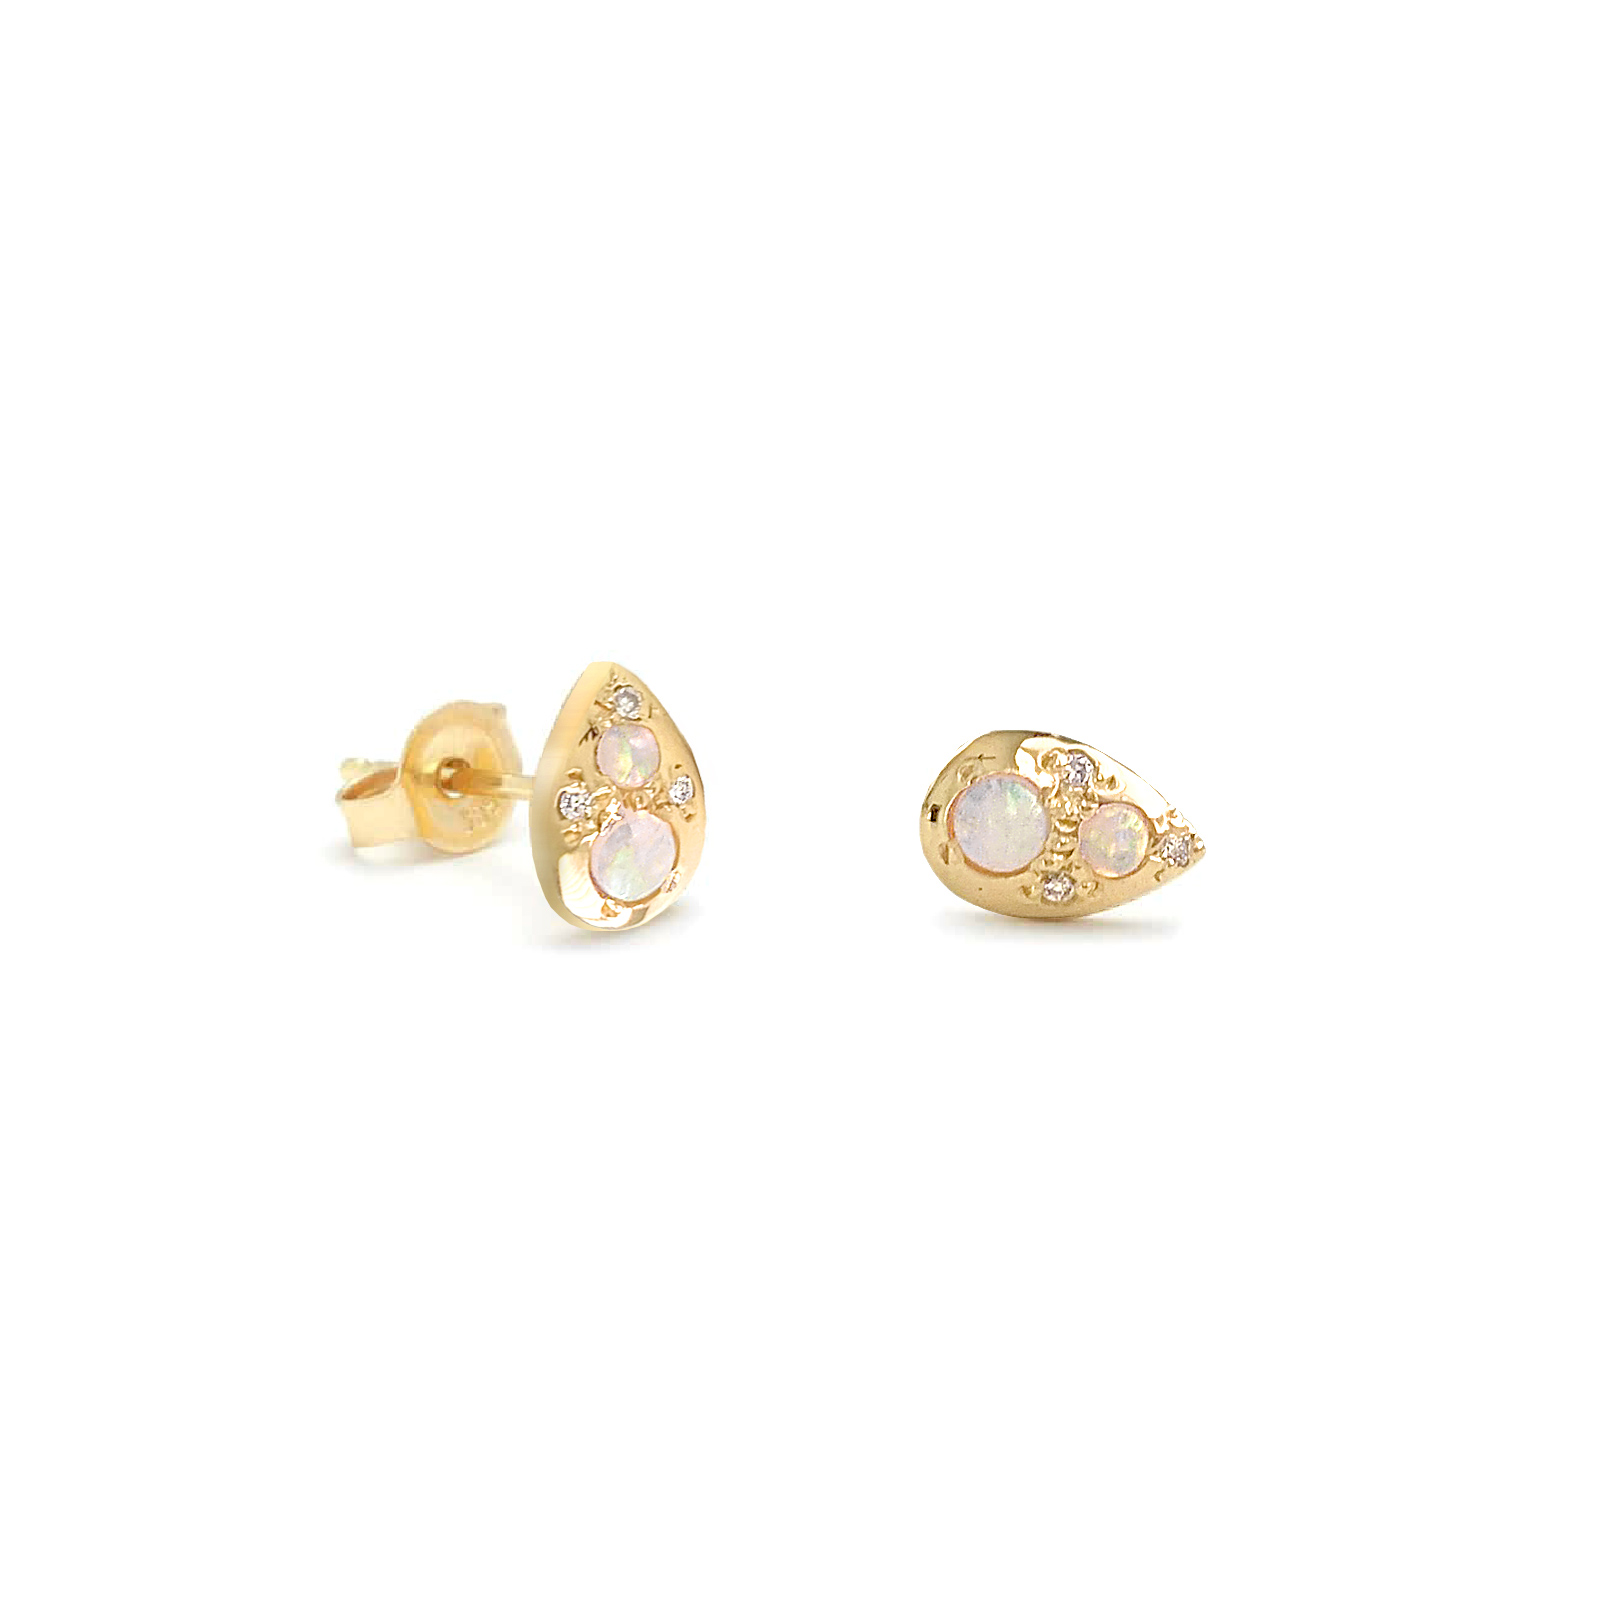 Pear Shaped Tiny 18k Gold Stud Earrings